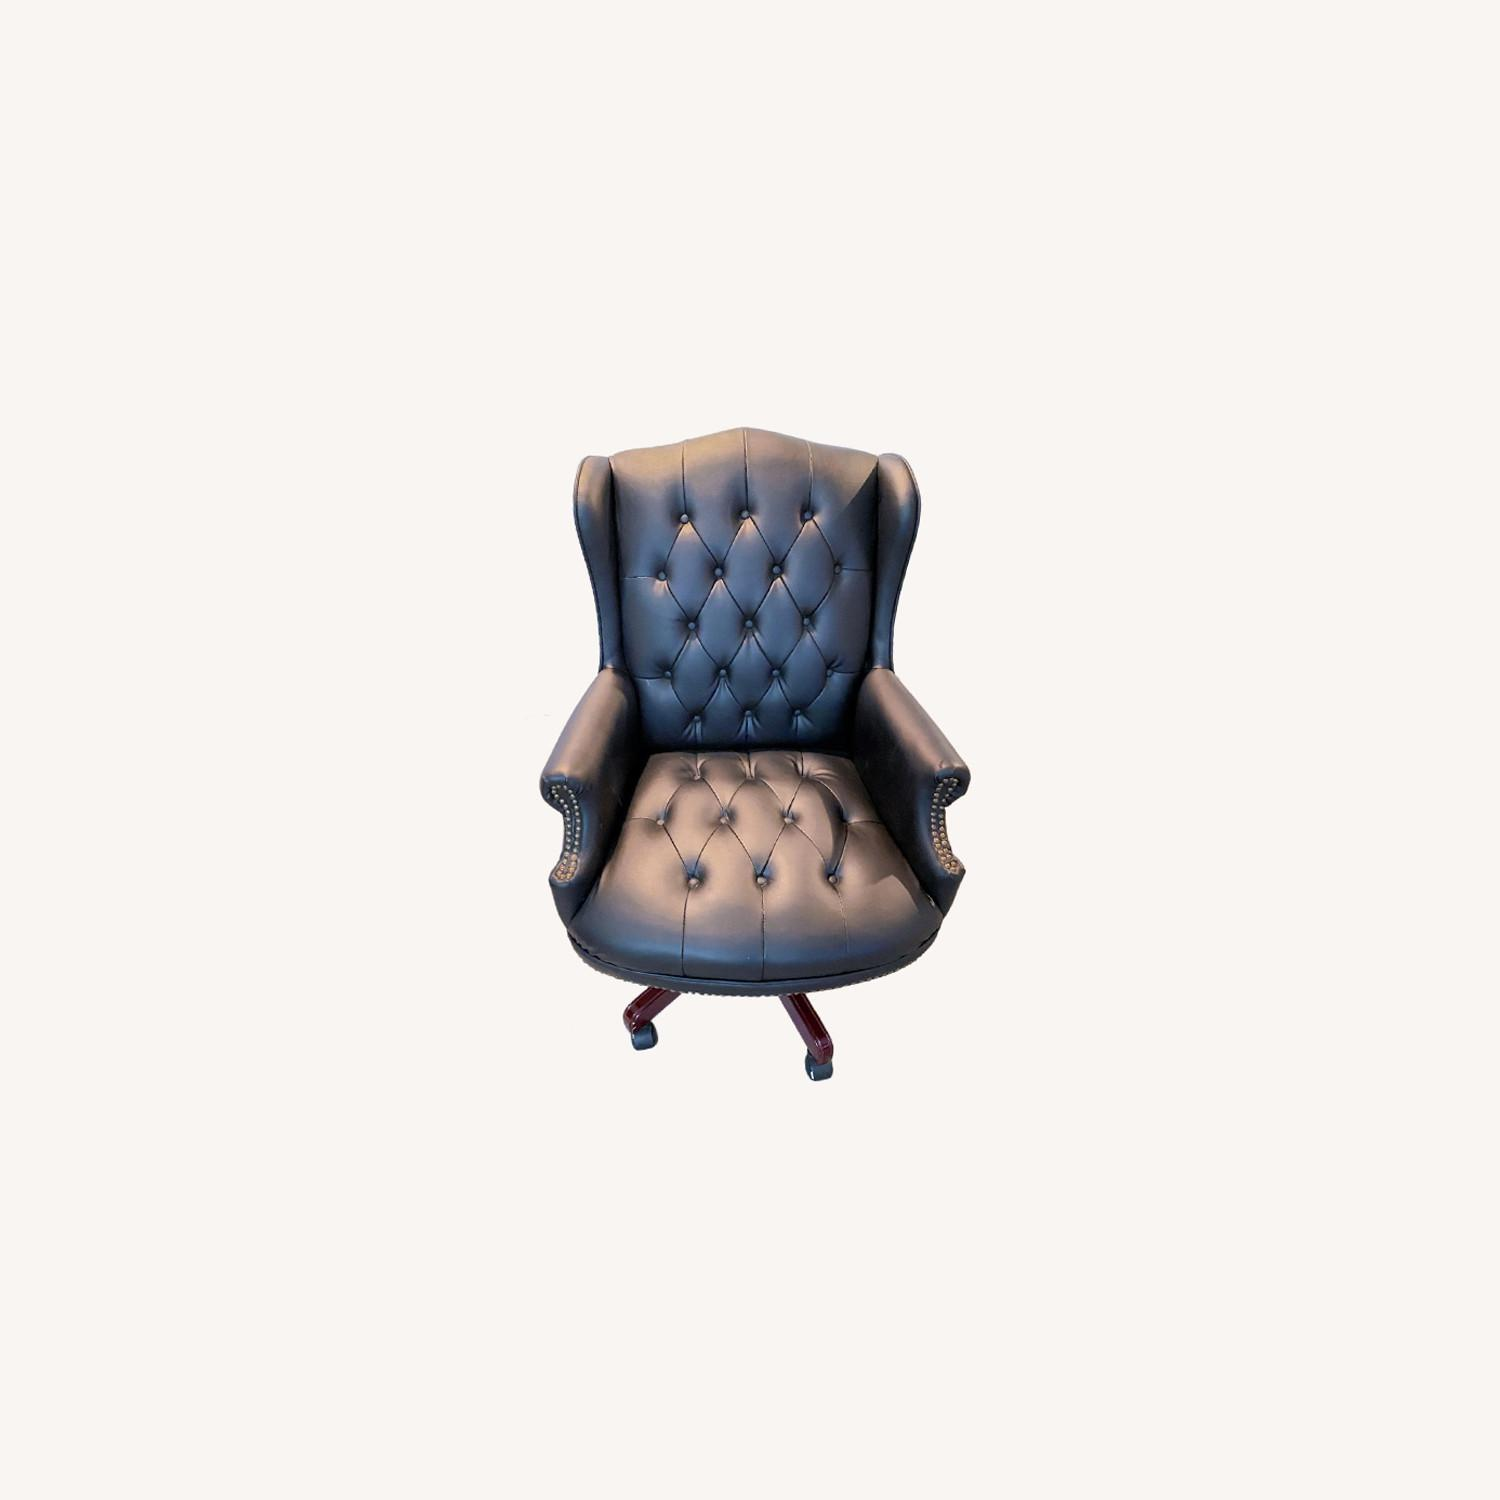 High Quality Executive Office Chair - image-0